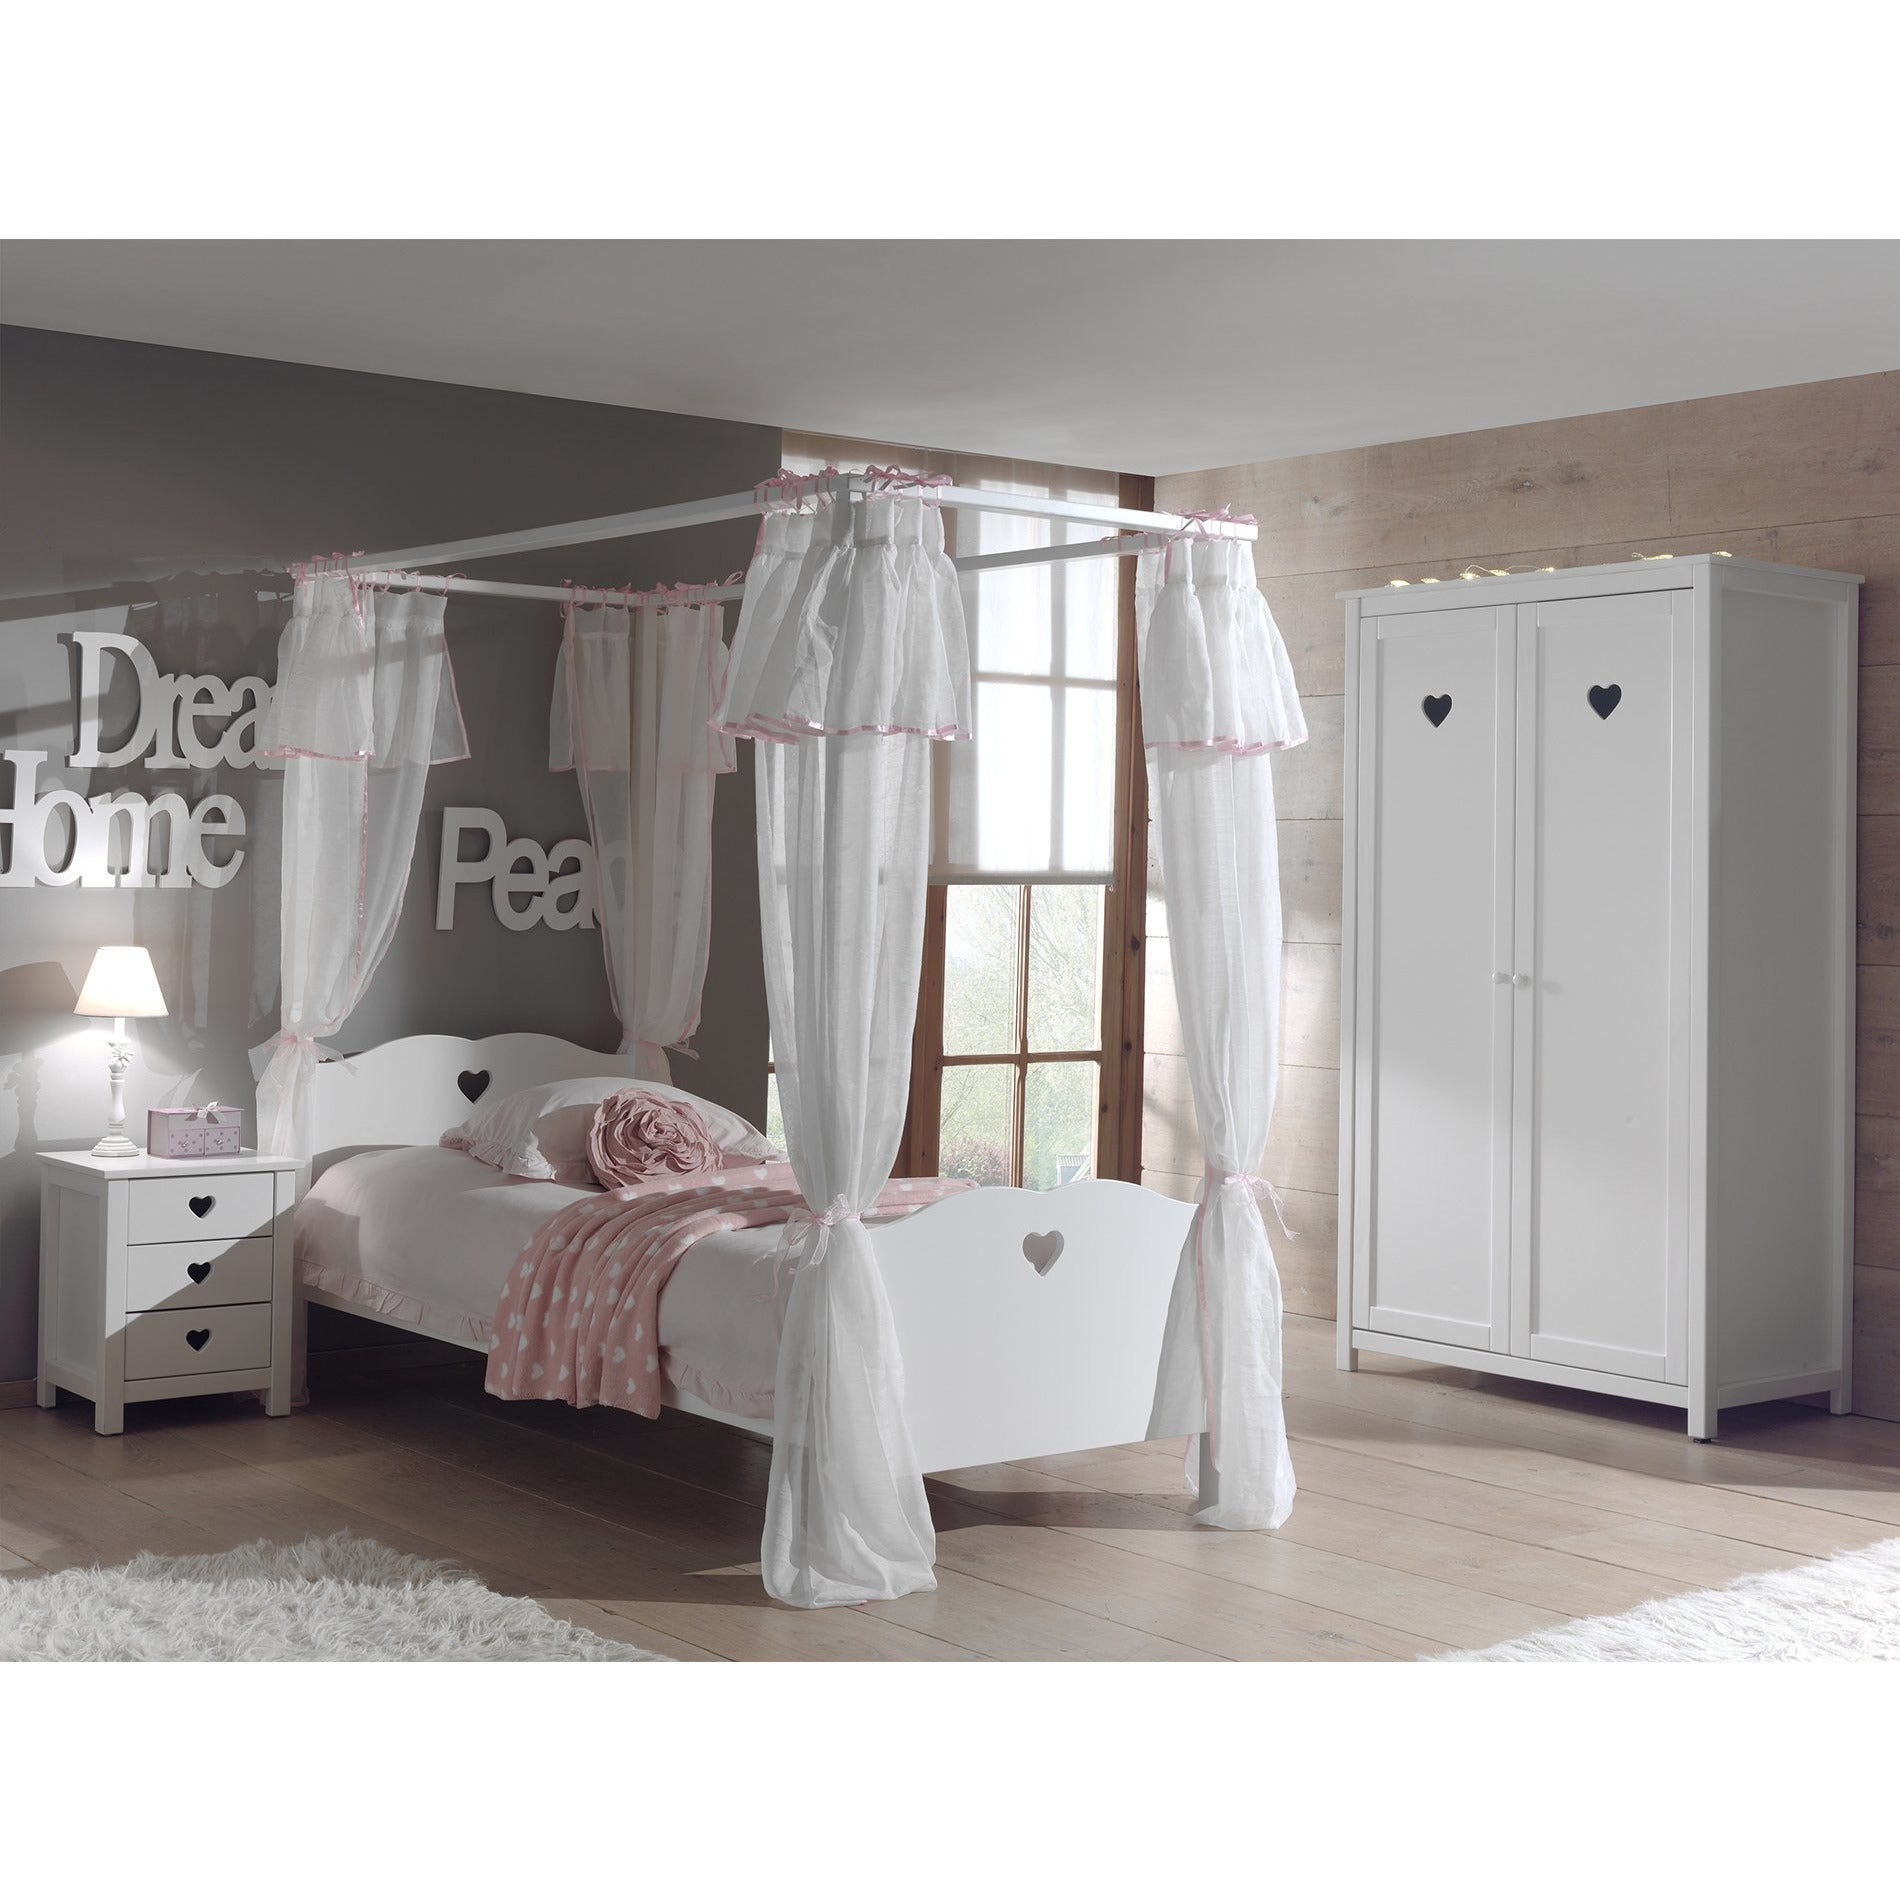 Amori - Kids Four Poster Bed in White